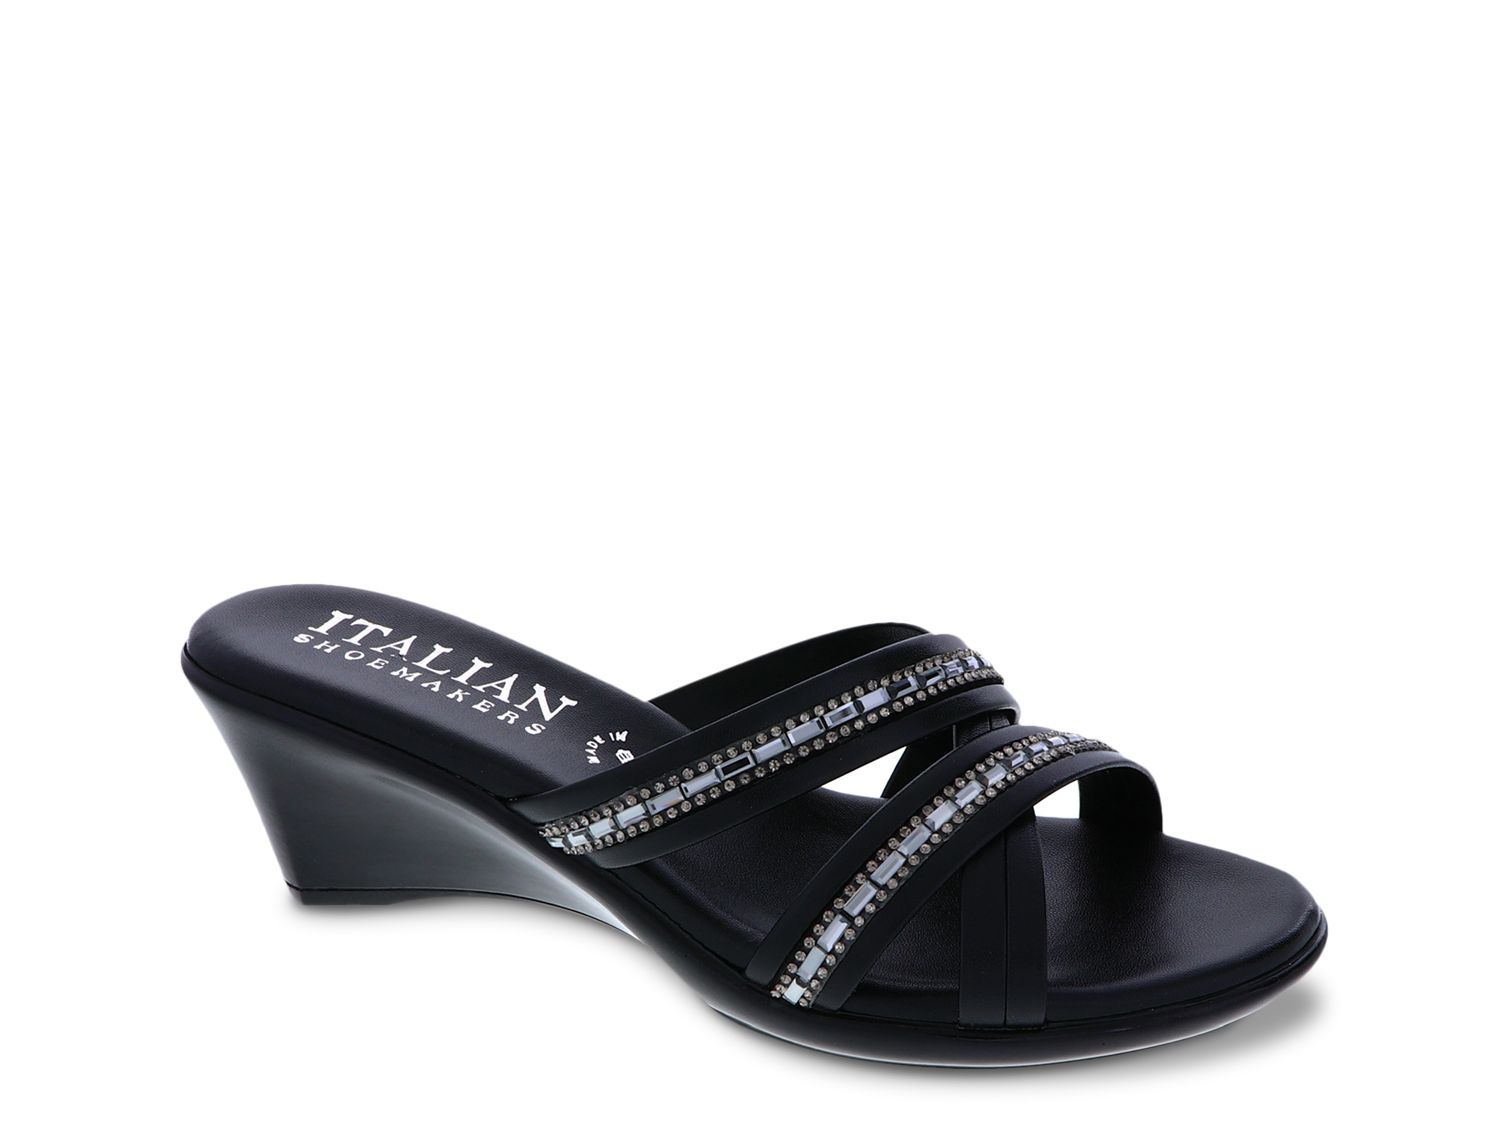 Italian Shoemakers-Passion Wedge Sandal Add glam to your look with the Passion wedge sandal from Italian Shoemakers. Designed with jewel-embellished straps, this slide sandal has a padded footbed and supportive sole.